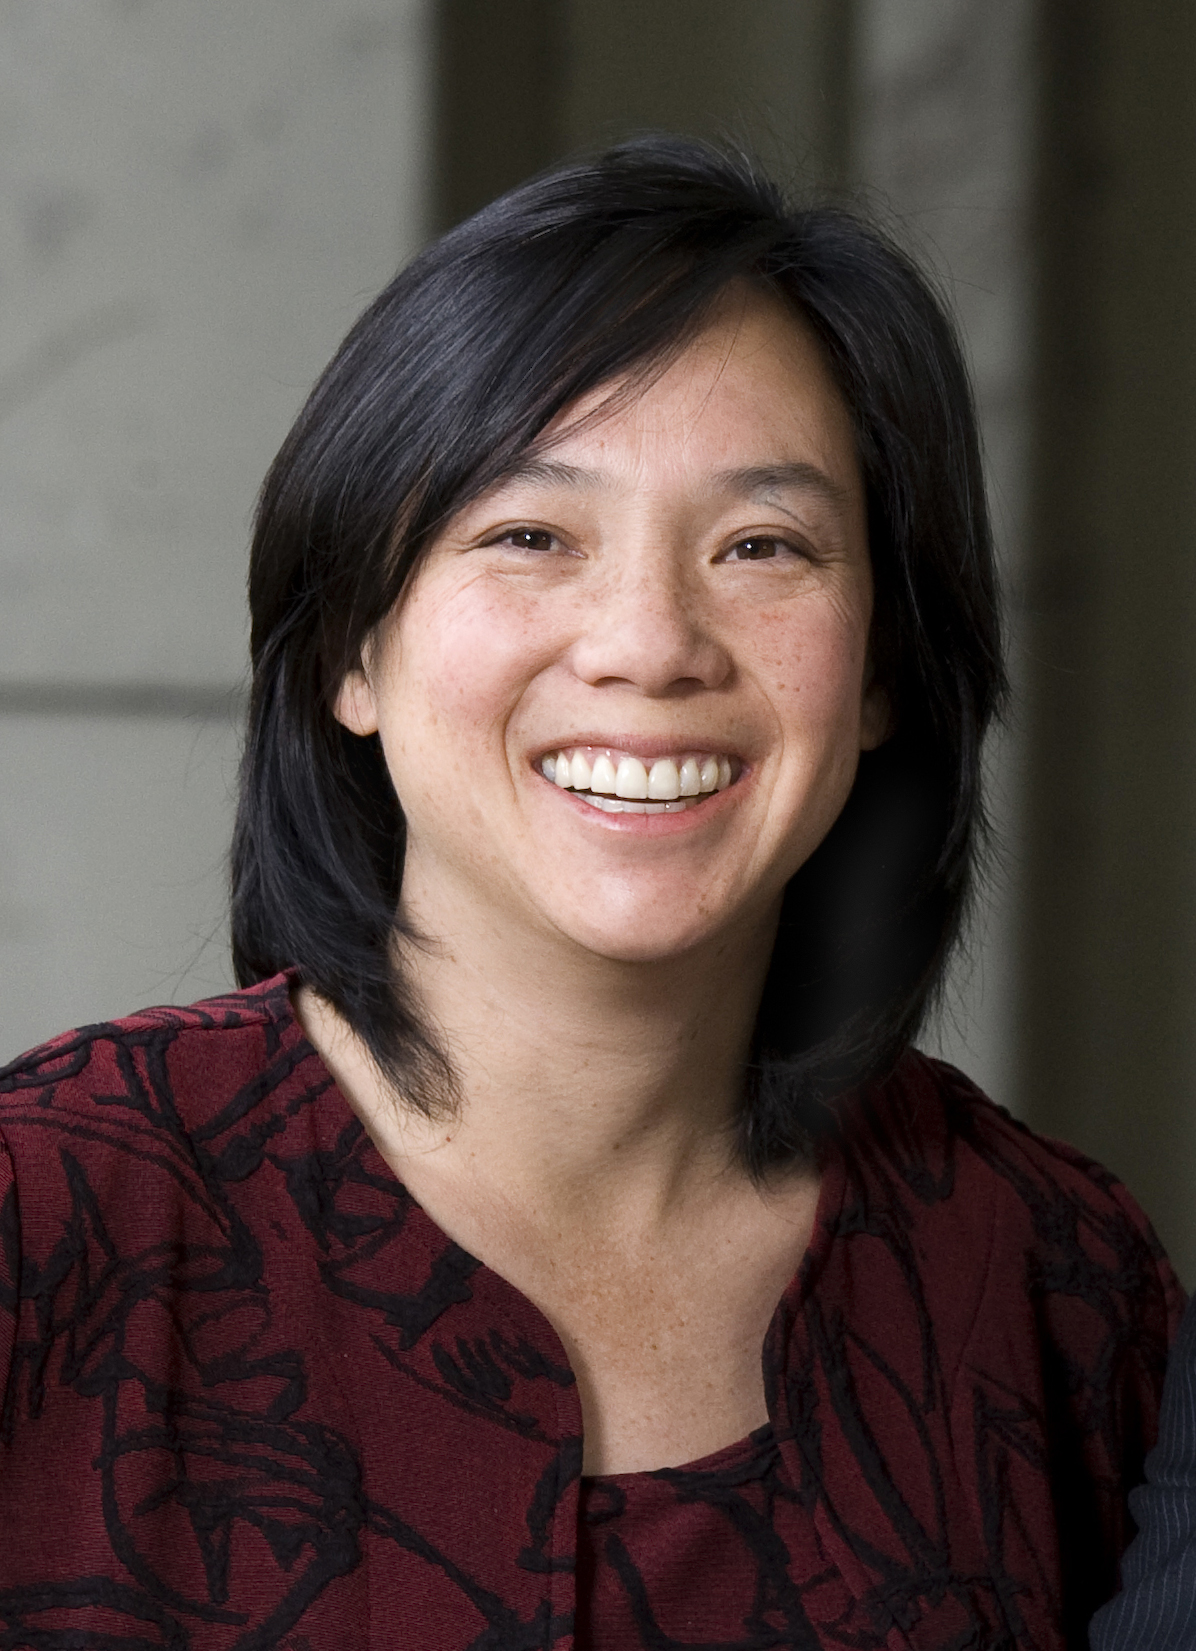 Decorative hero image for Kathy Kwan: Philanthropist who advances job and education opportunities for the underprivileged in the Bay Area page.